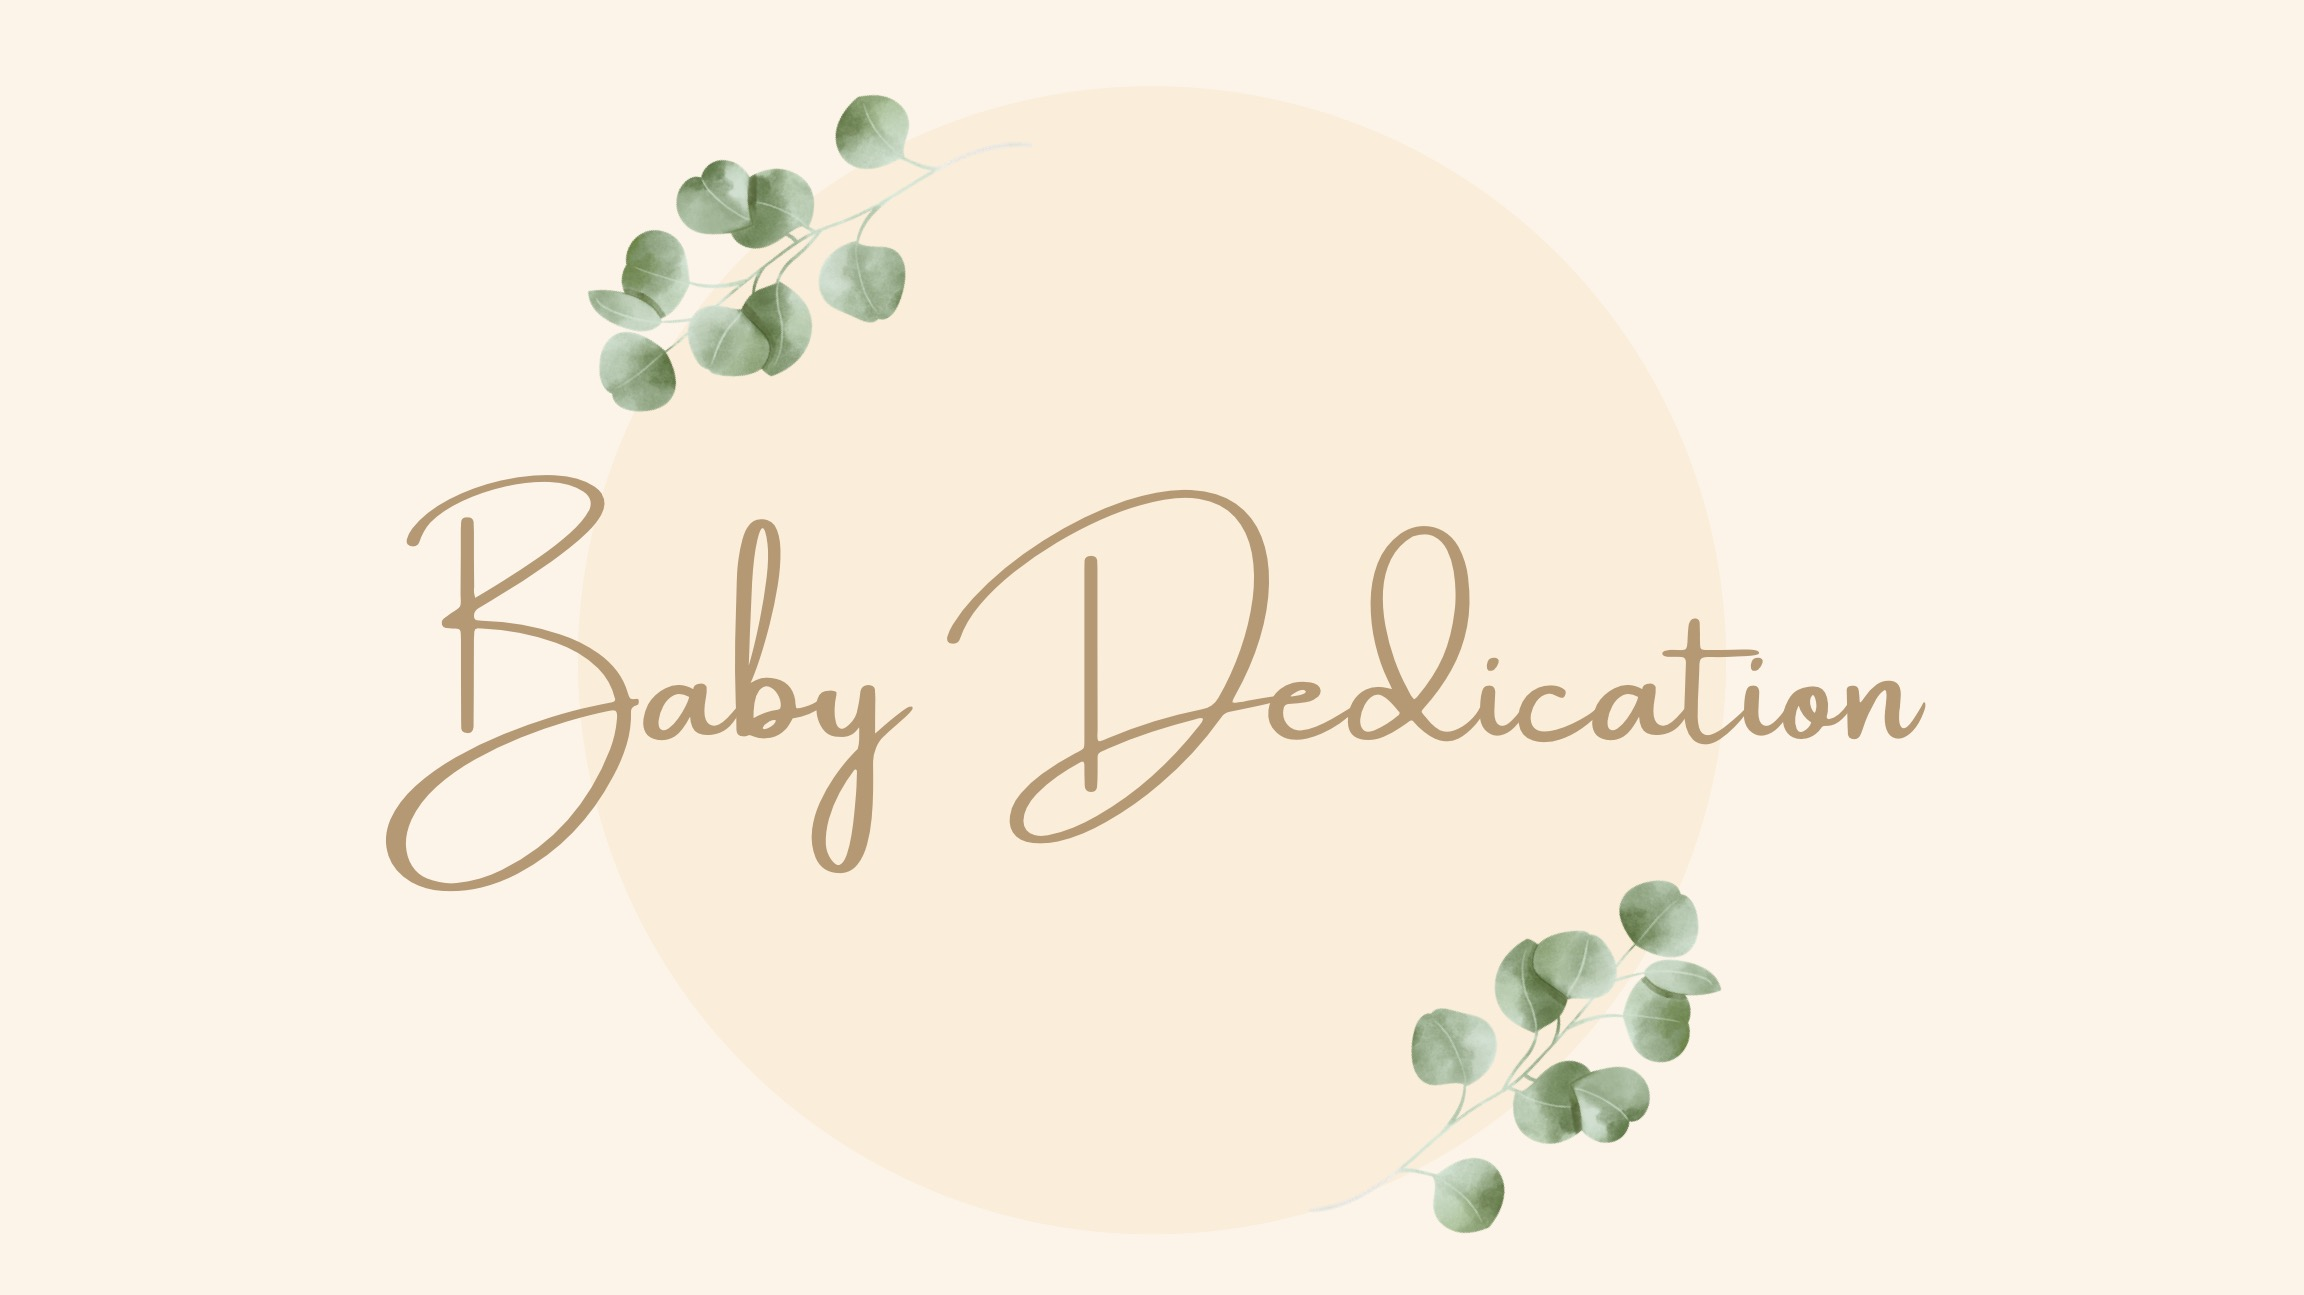 Baby Dedication 2021 PPT slide image